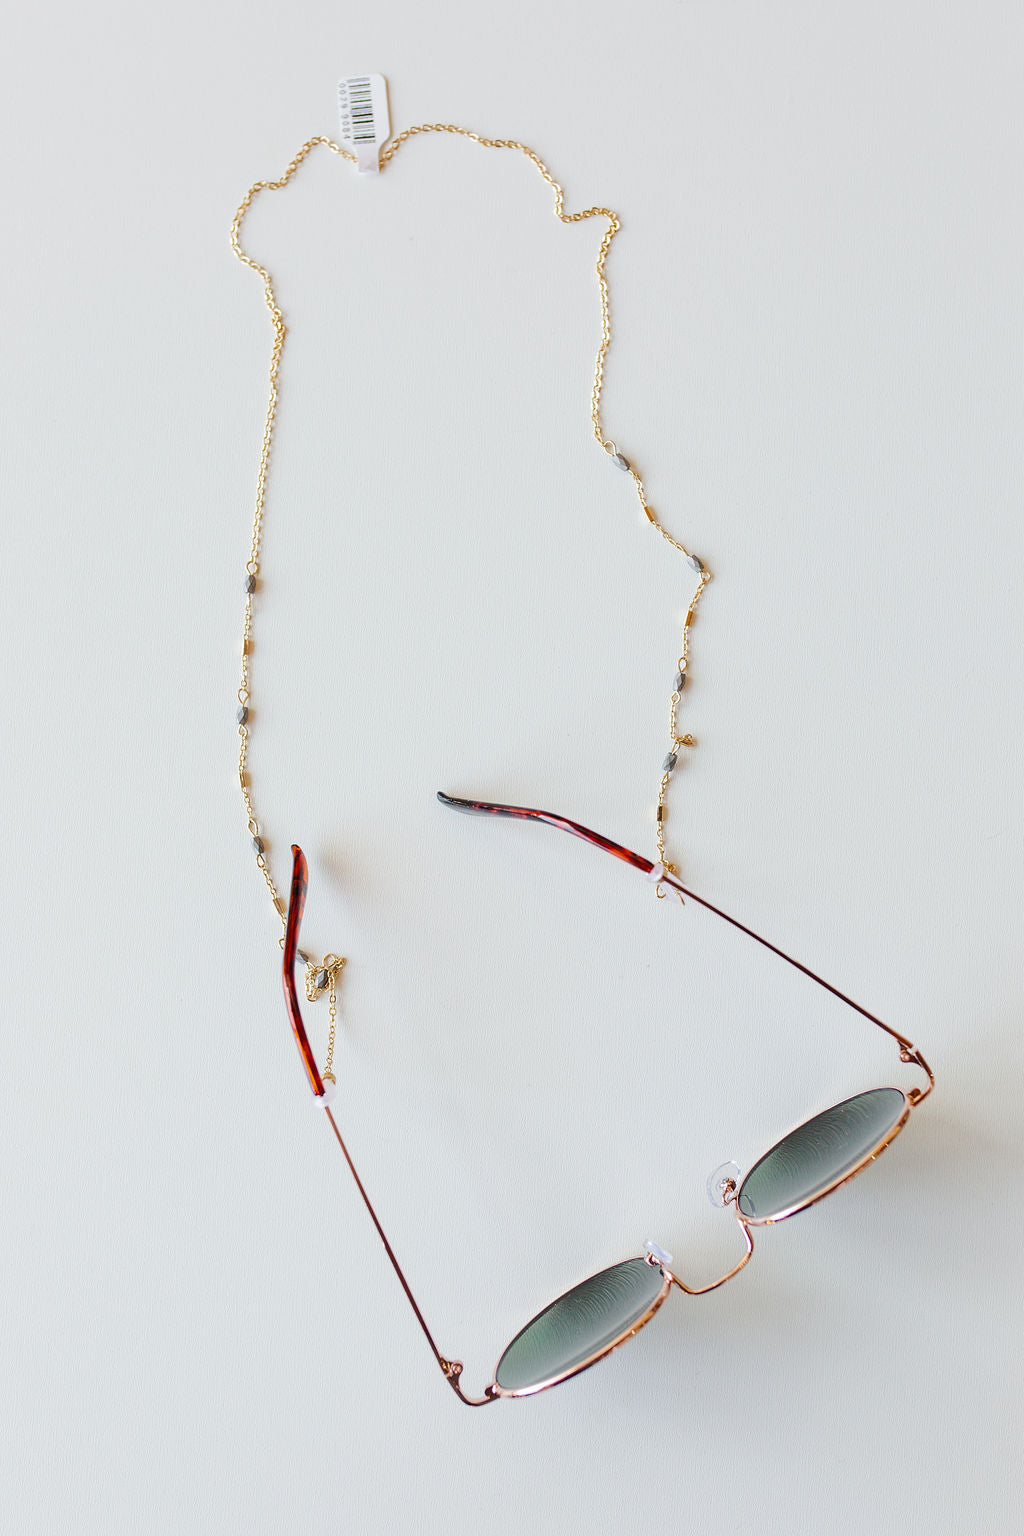 mode, bead link sunglass chain